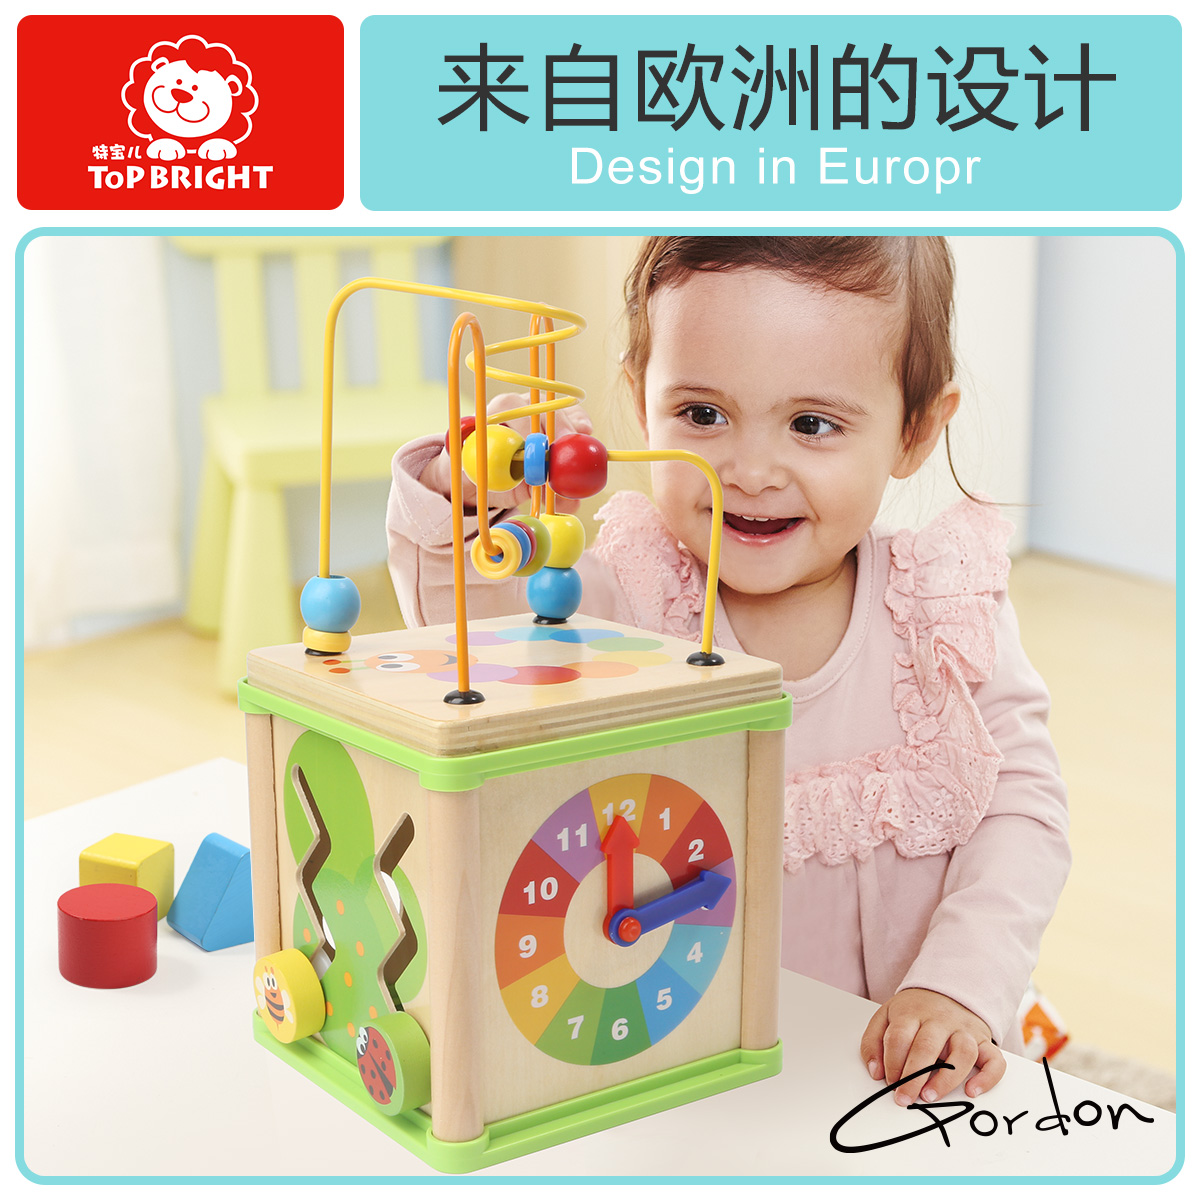 One Year Old Baby Birthday Giftinfants And Young Children Beaded Frame Beads Around The 1 3 Toy Girl 2 Boy Practical